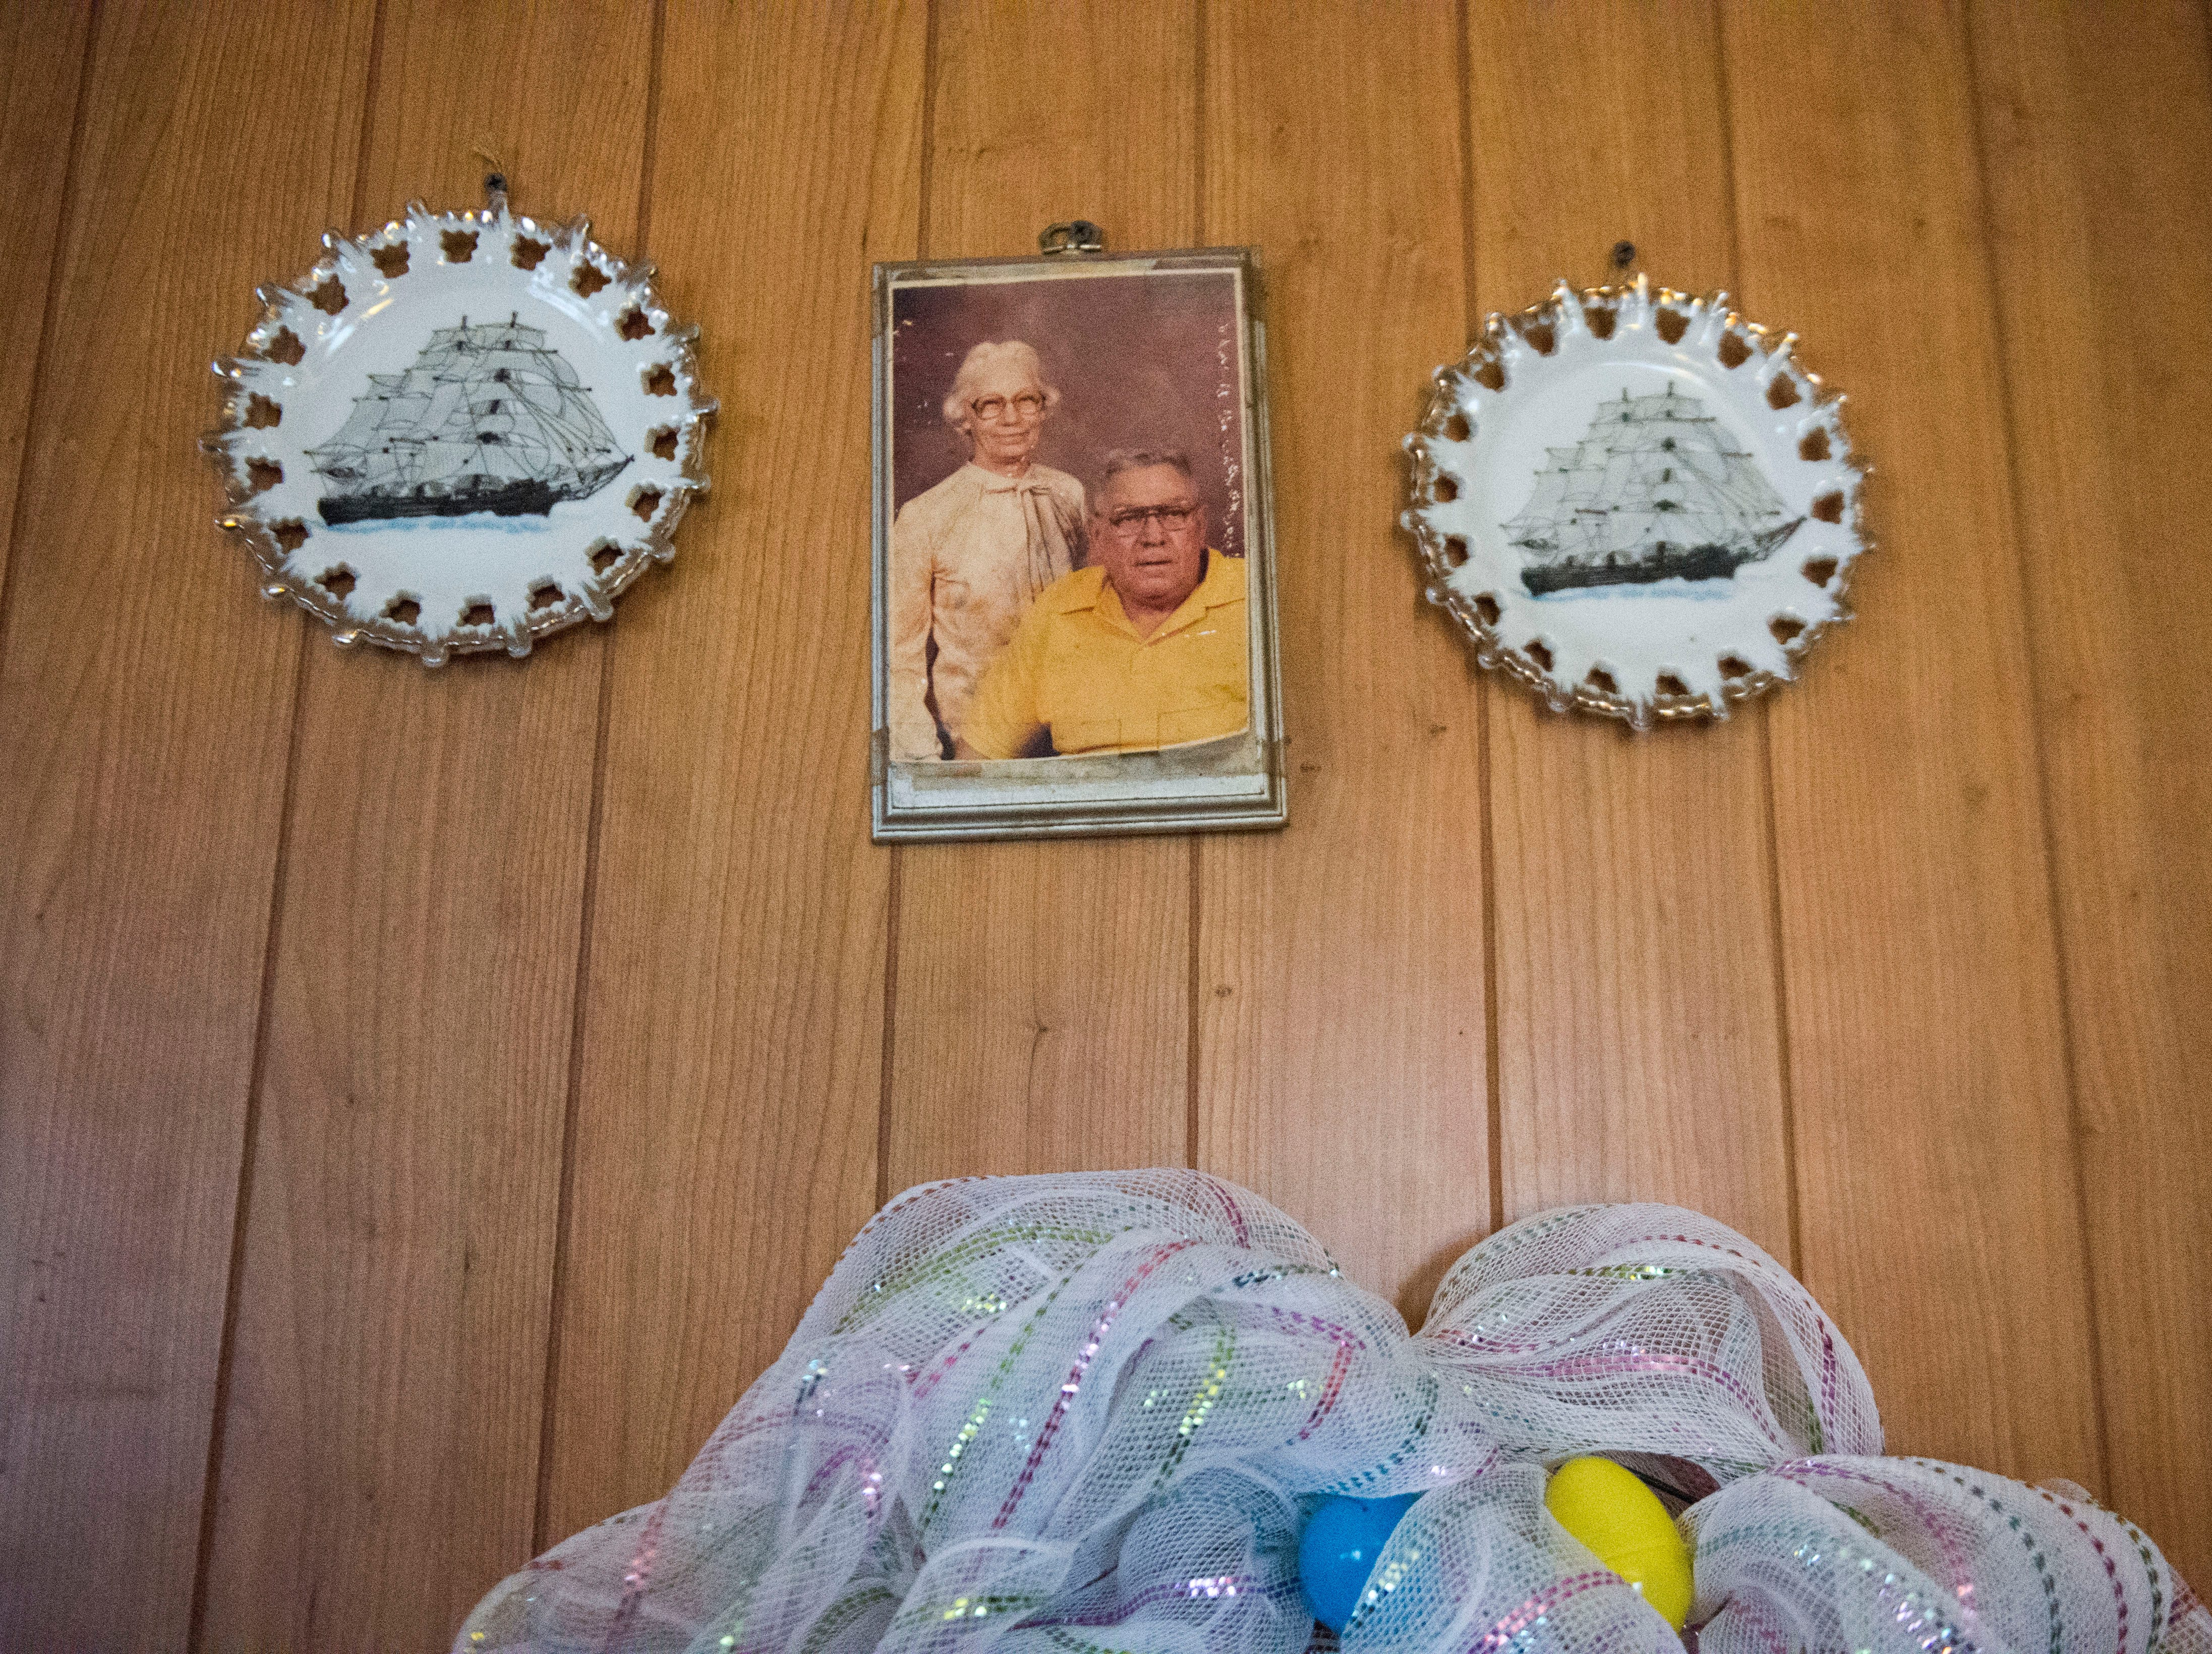 A photo of Mary Zick's late parents hangs on her wall in her Knoxville home Tuesday, Dec. 4, 2018. Zick receives dialysis 3 times per week, and the Milk Fund has provided her with Ensure the past 4 to 5 months.